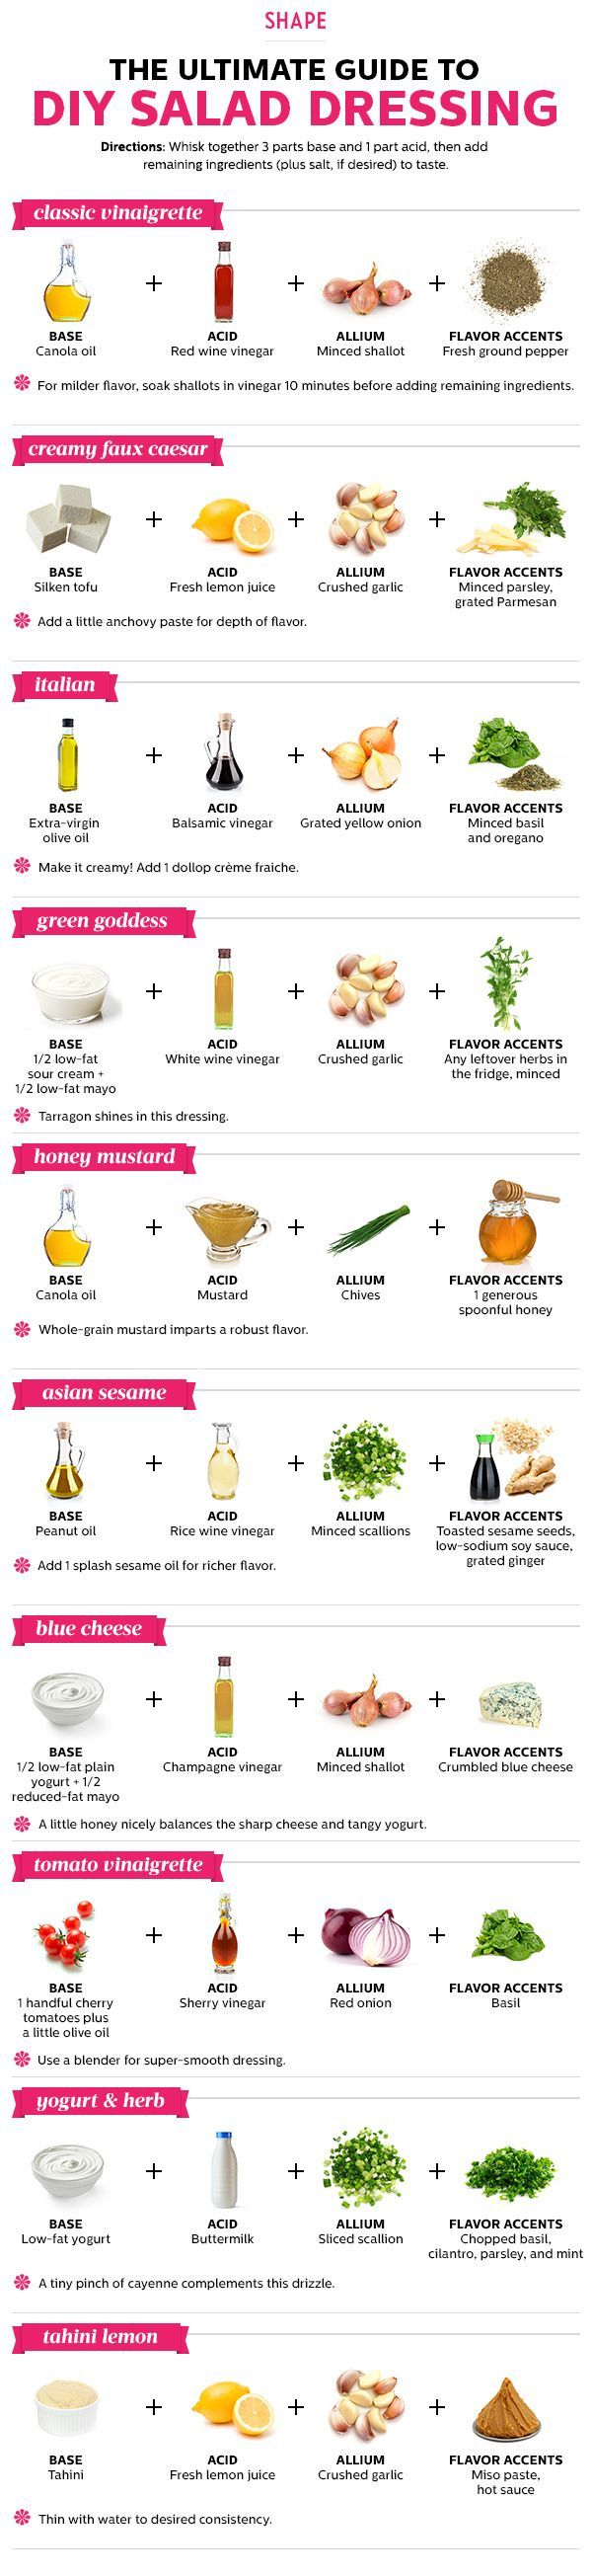 DIY salad dressing